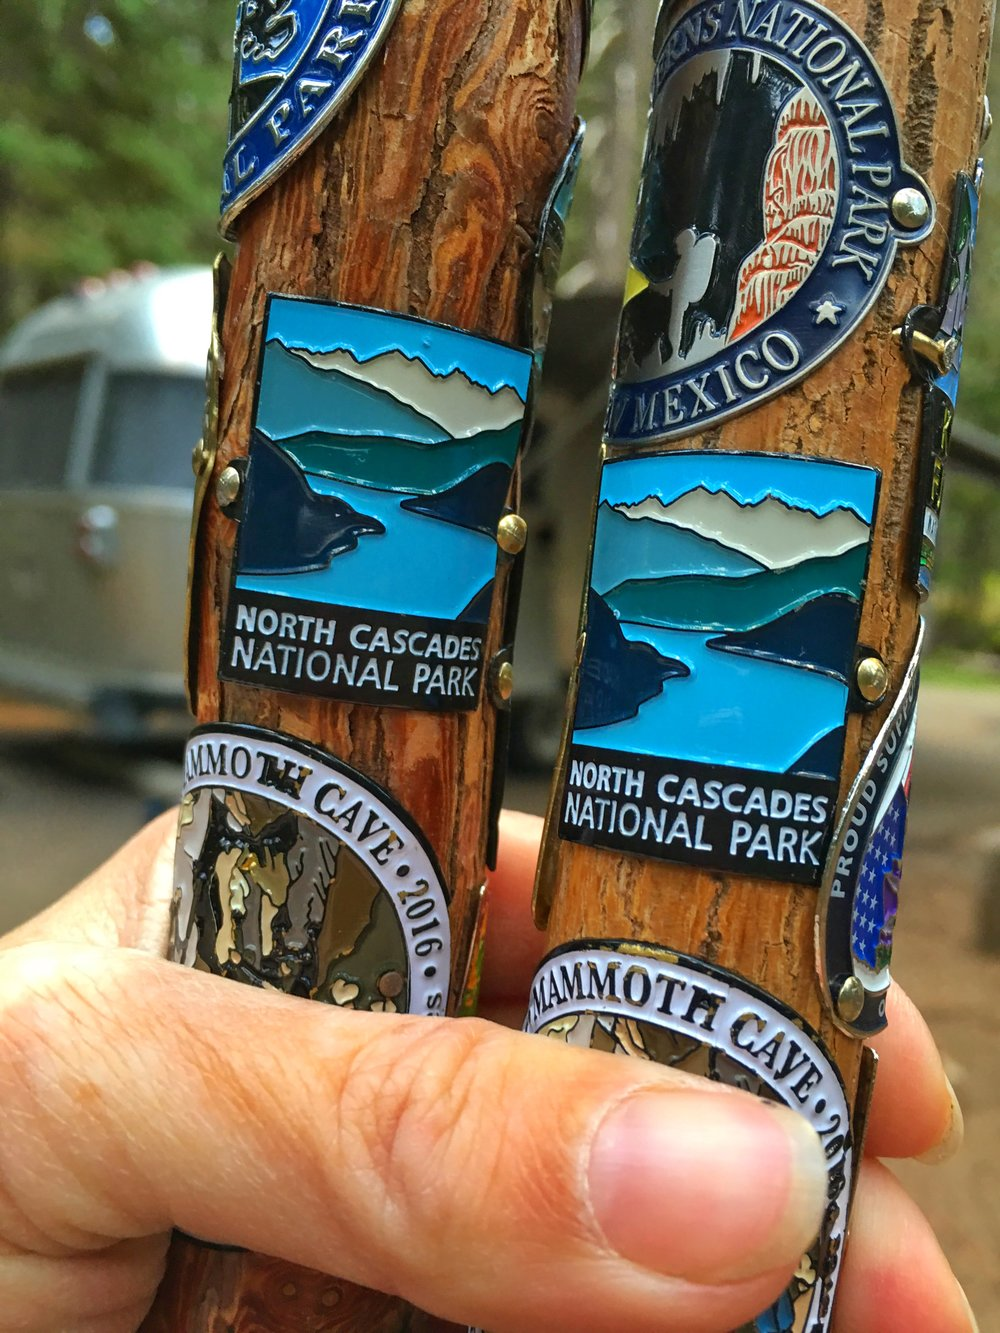 Hiking stick medallions from North Cascades National Park in Washington State.